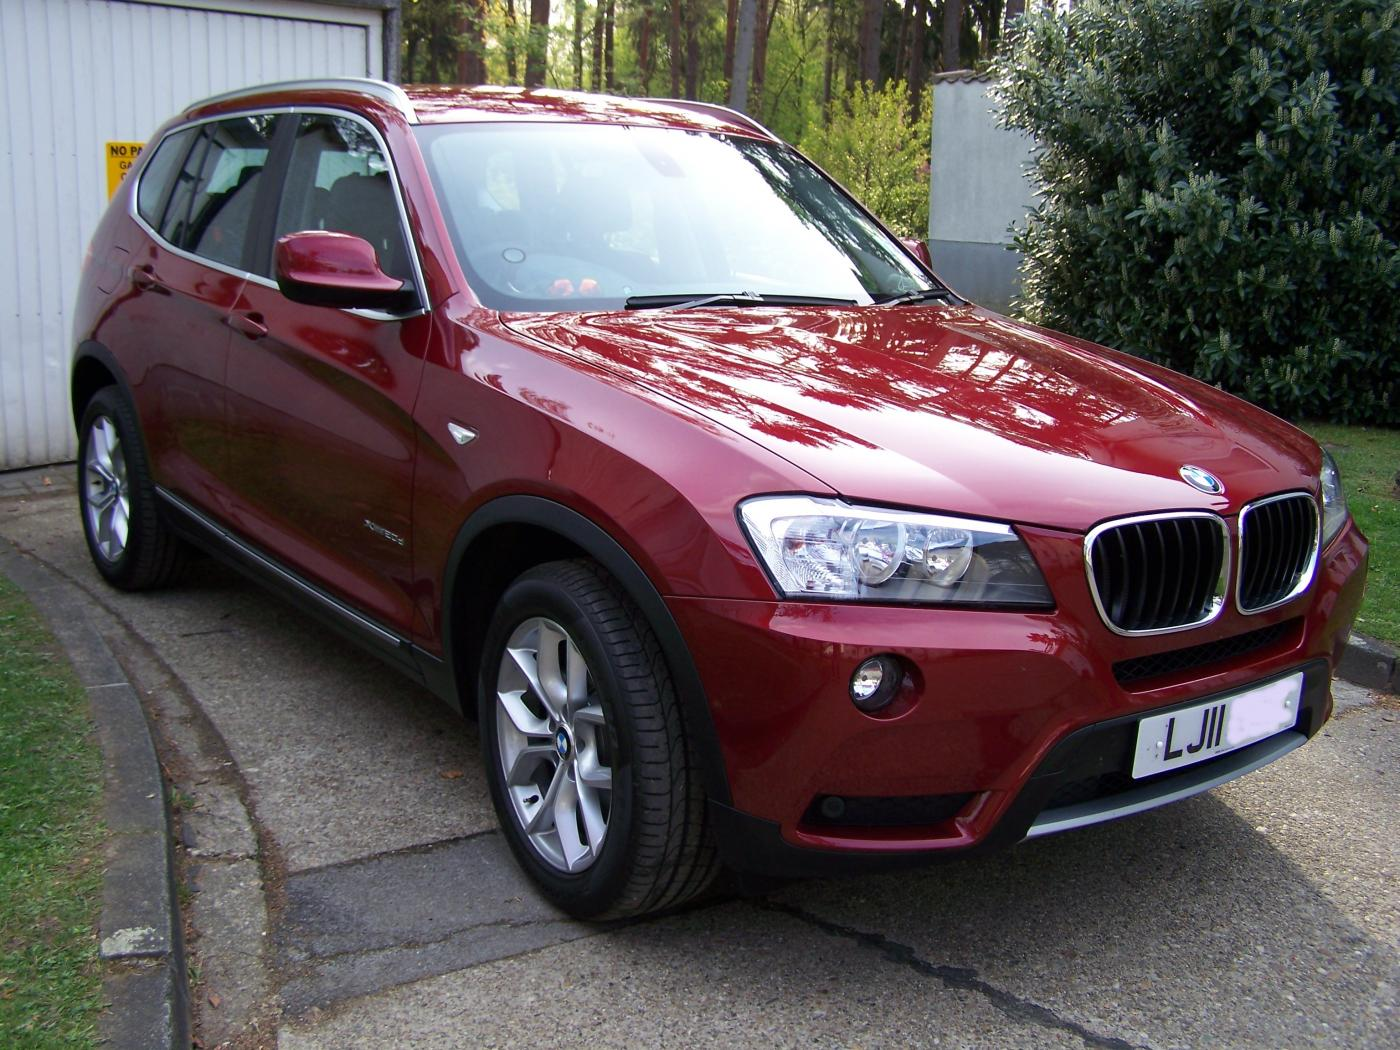 For sale 2011 bmw x3 2 0d se auto in metallic vermilion red uk based